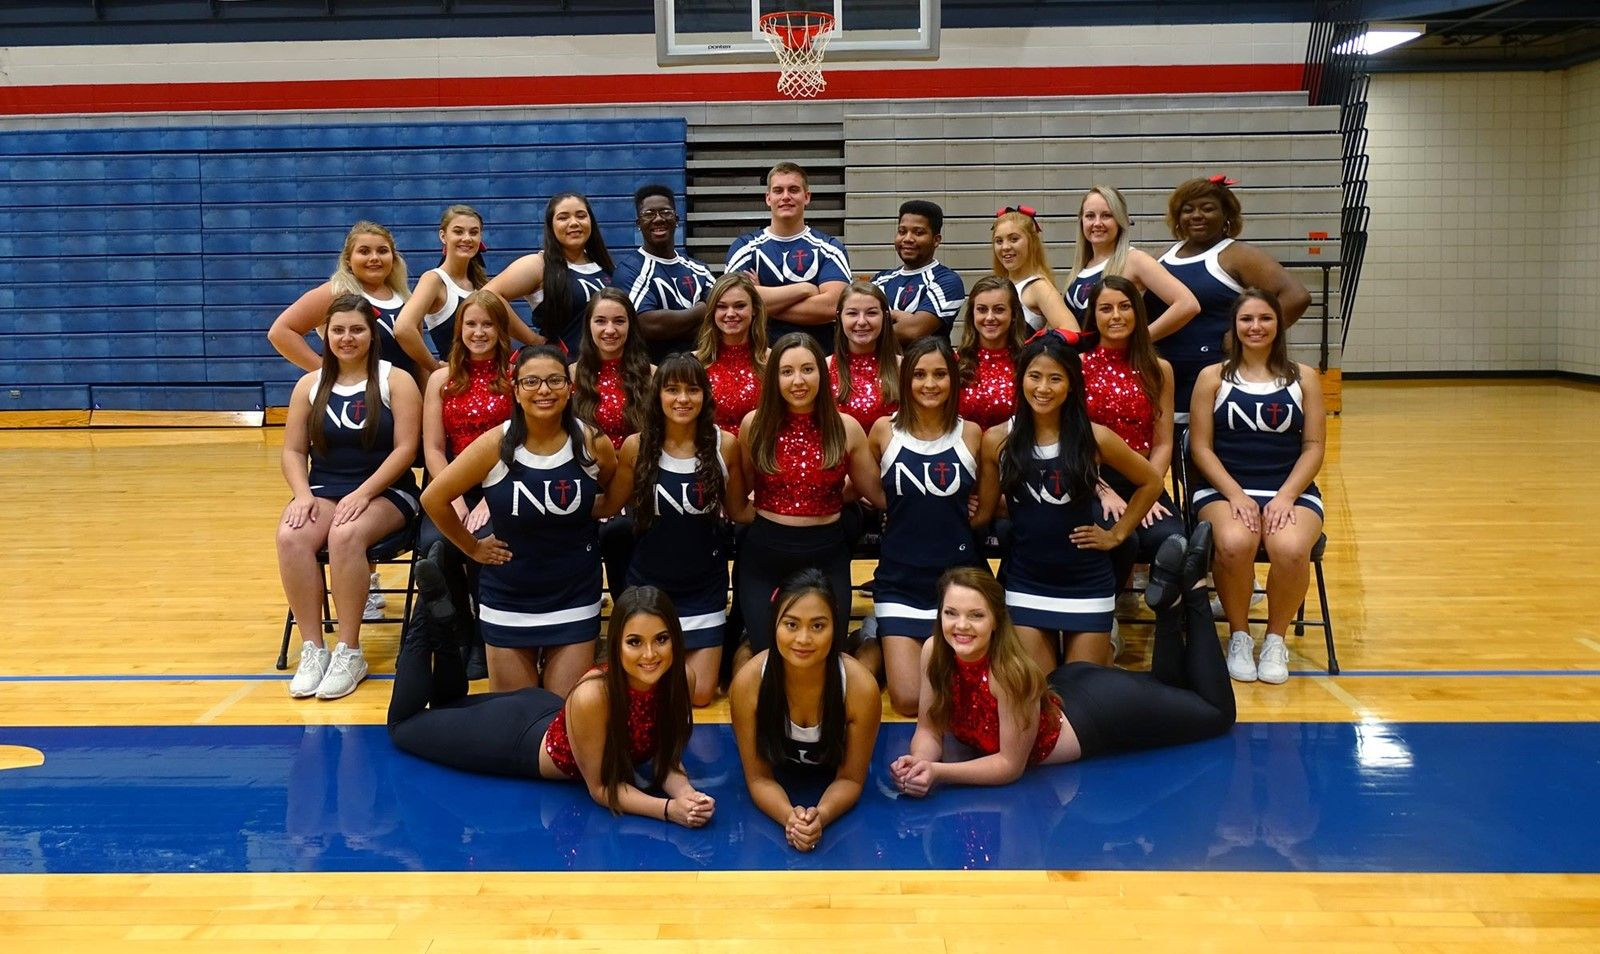 Meet the cheer and dance team: the faces of Jet pride